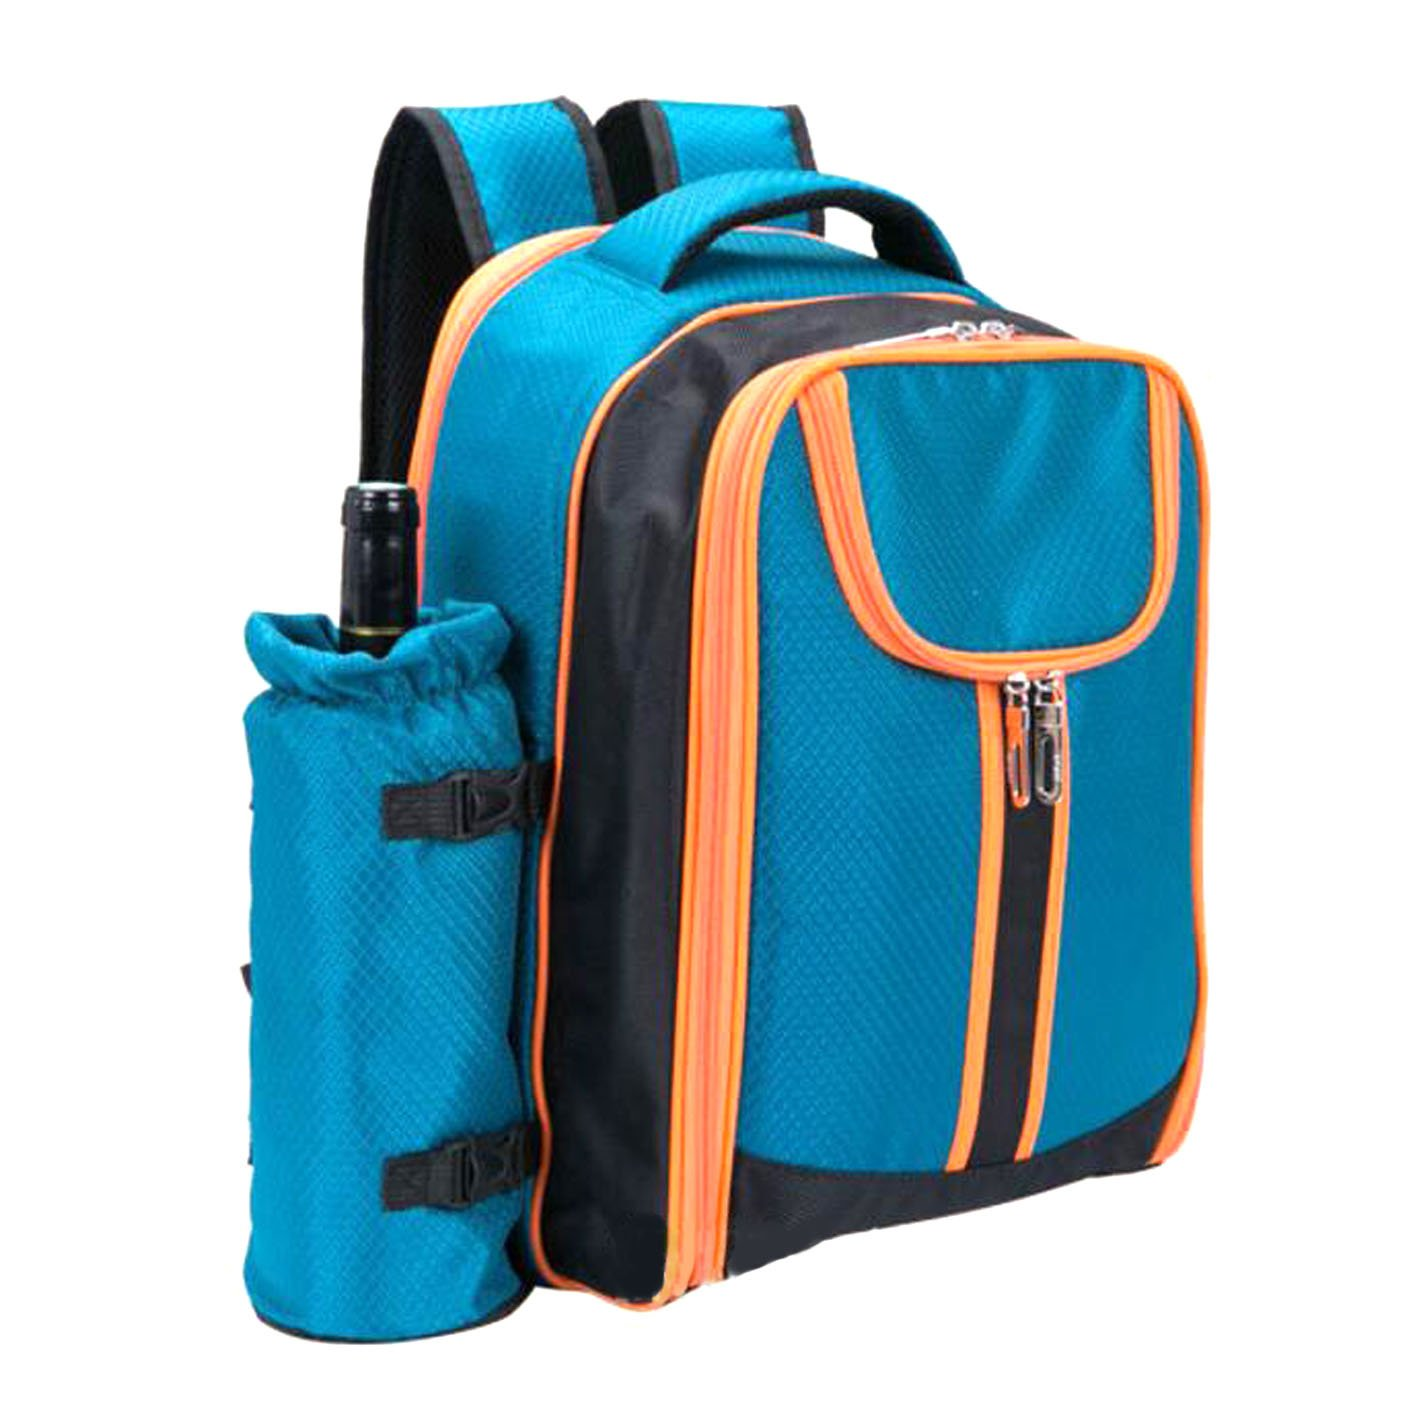 S SKSTYLE 4 Person Picnic Backpack with Solid Stainless Steel Utensils, Oversized Water Resistant Fleece Blanket, Cooler Compartment, Detachable Wine Bottle Holder in a Modern Designed Backpack